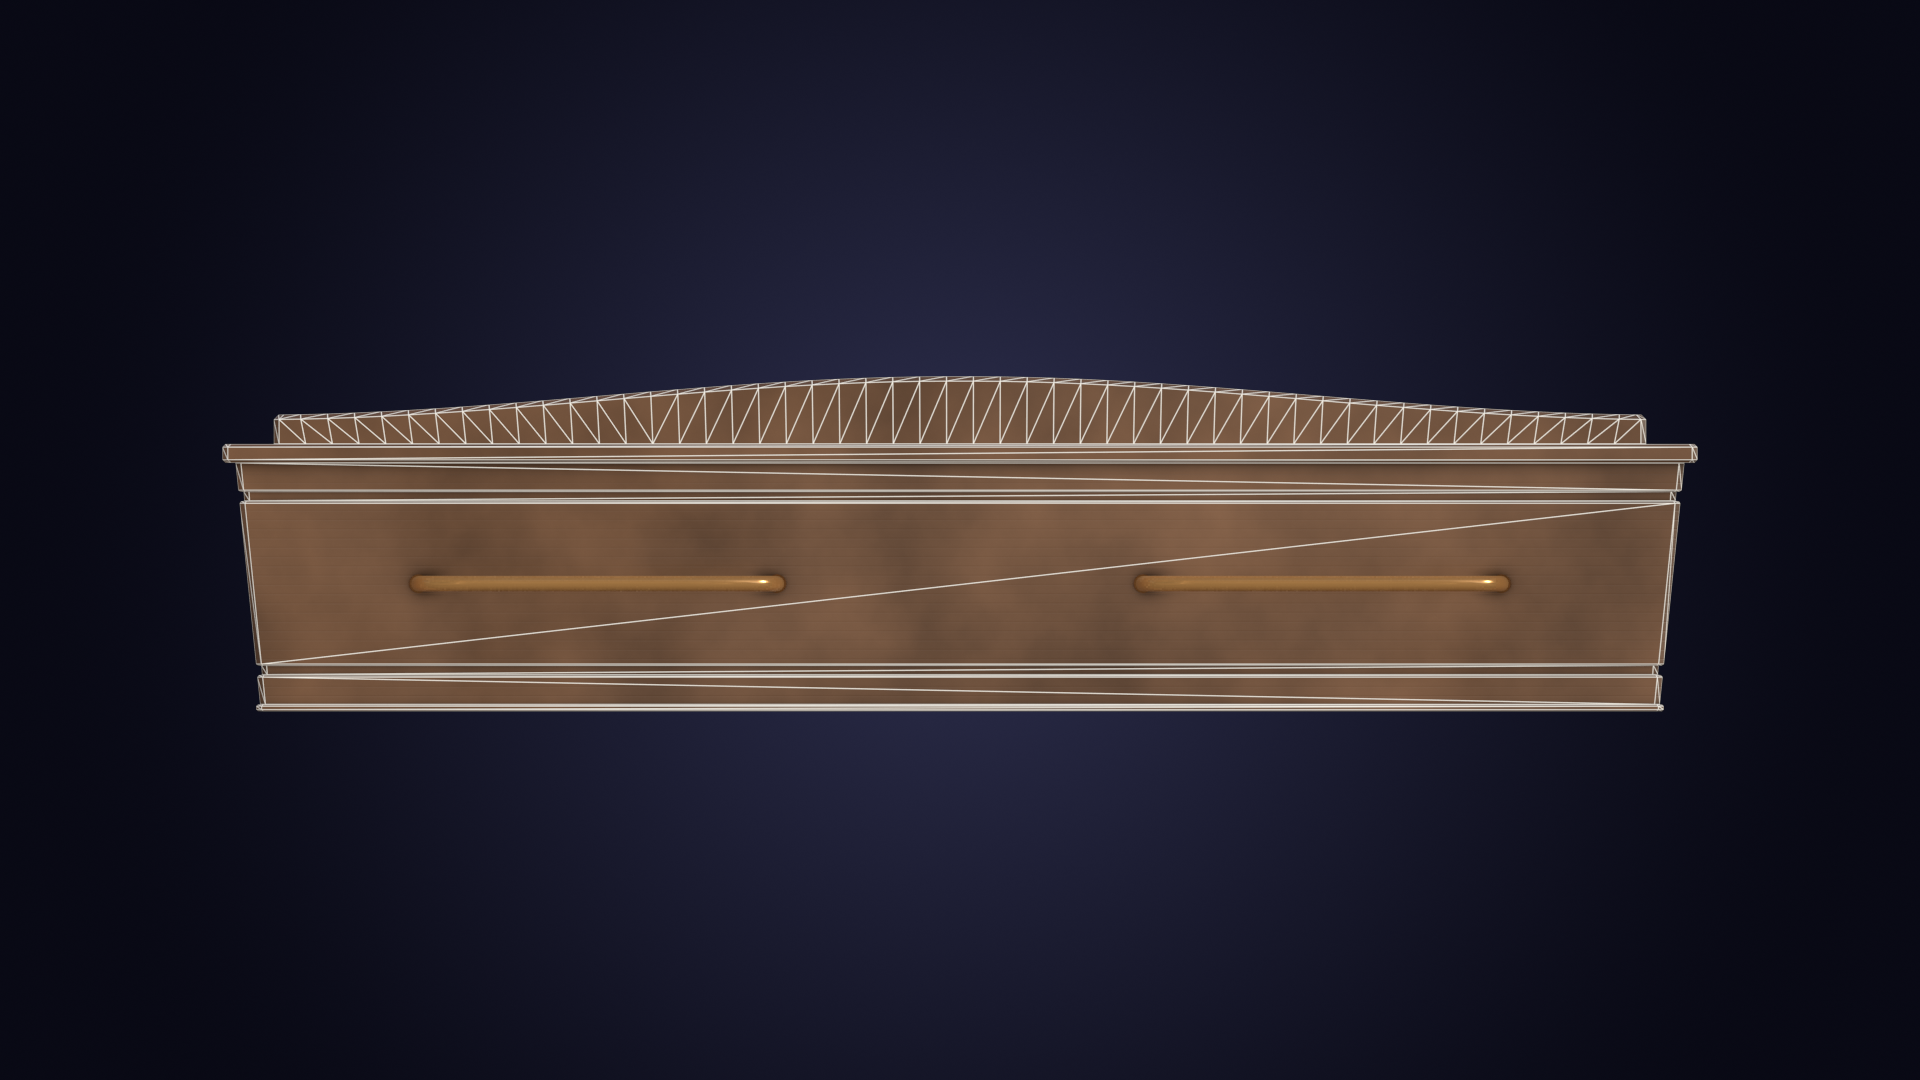 Wooden Coffin preview image 2